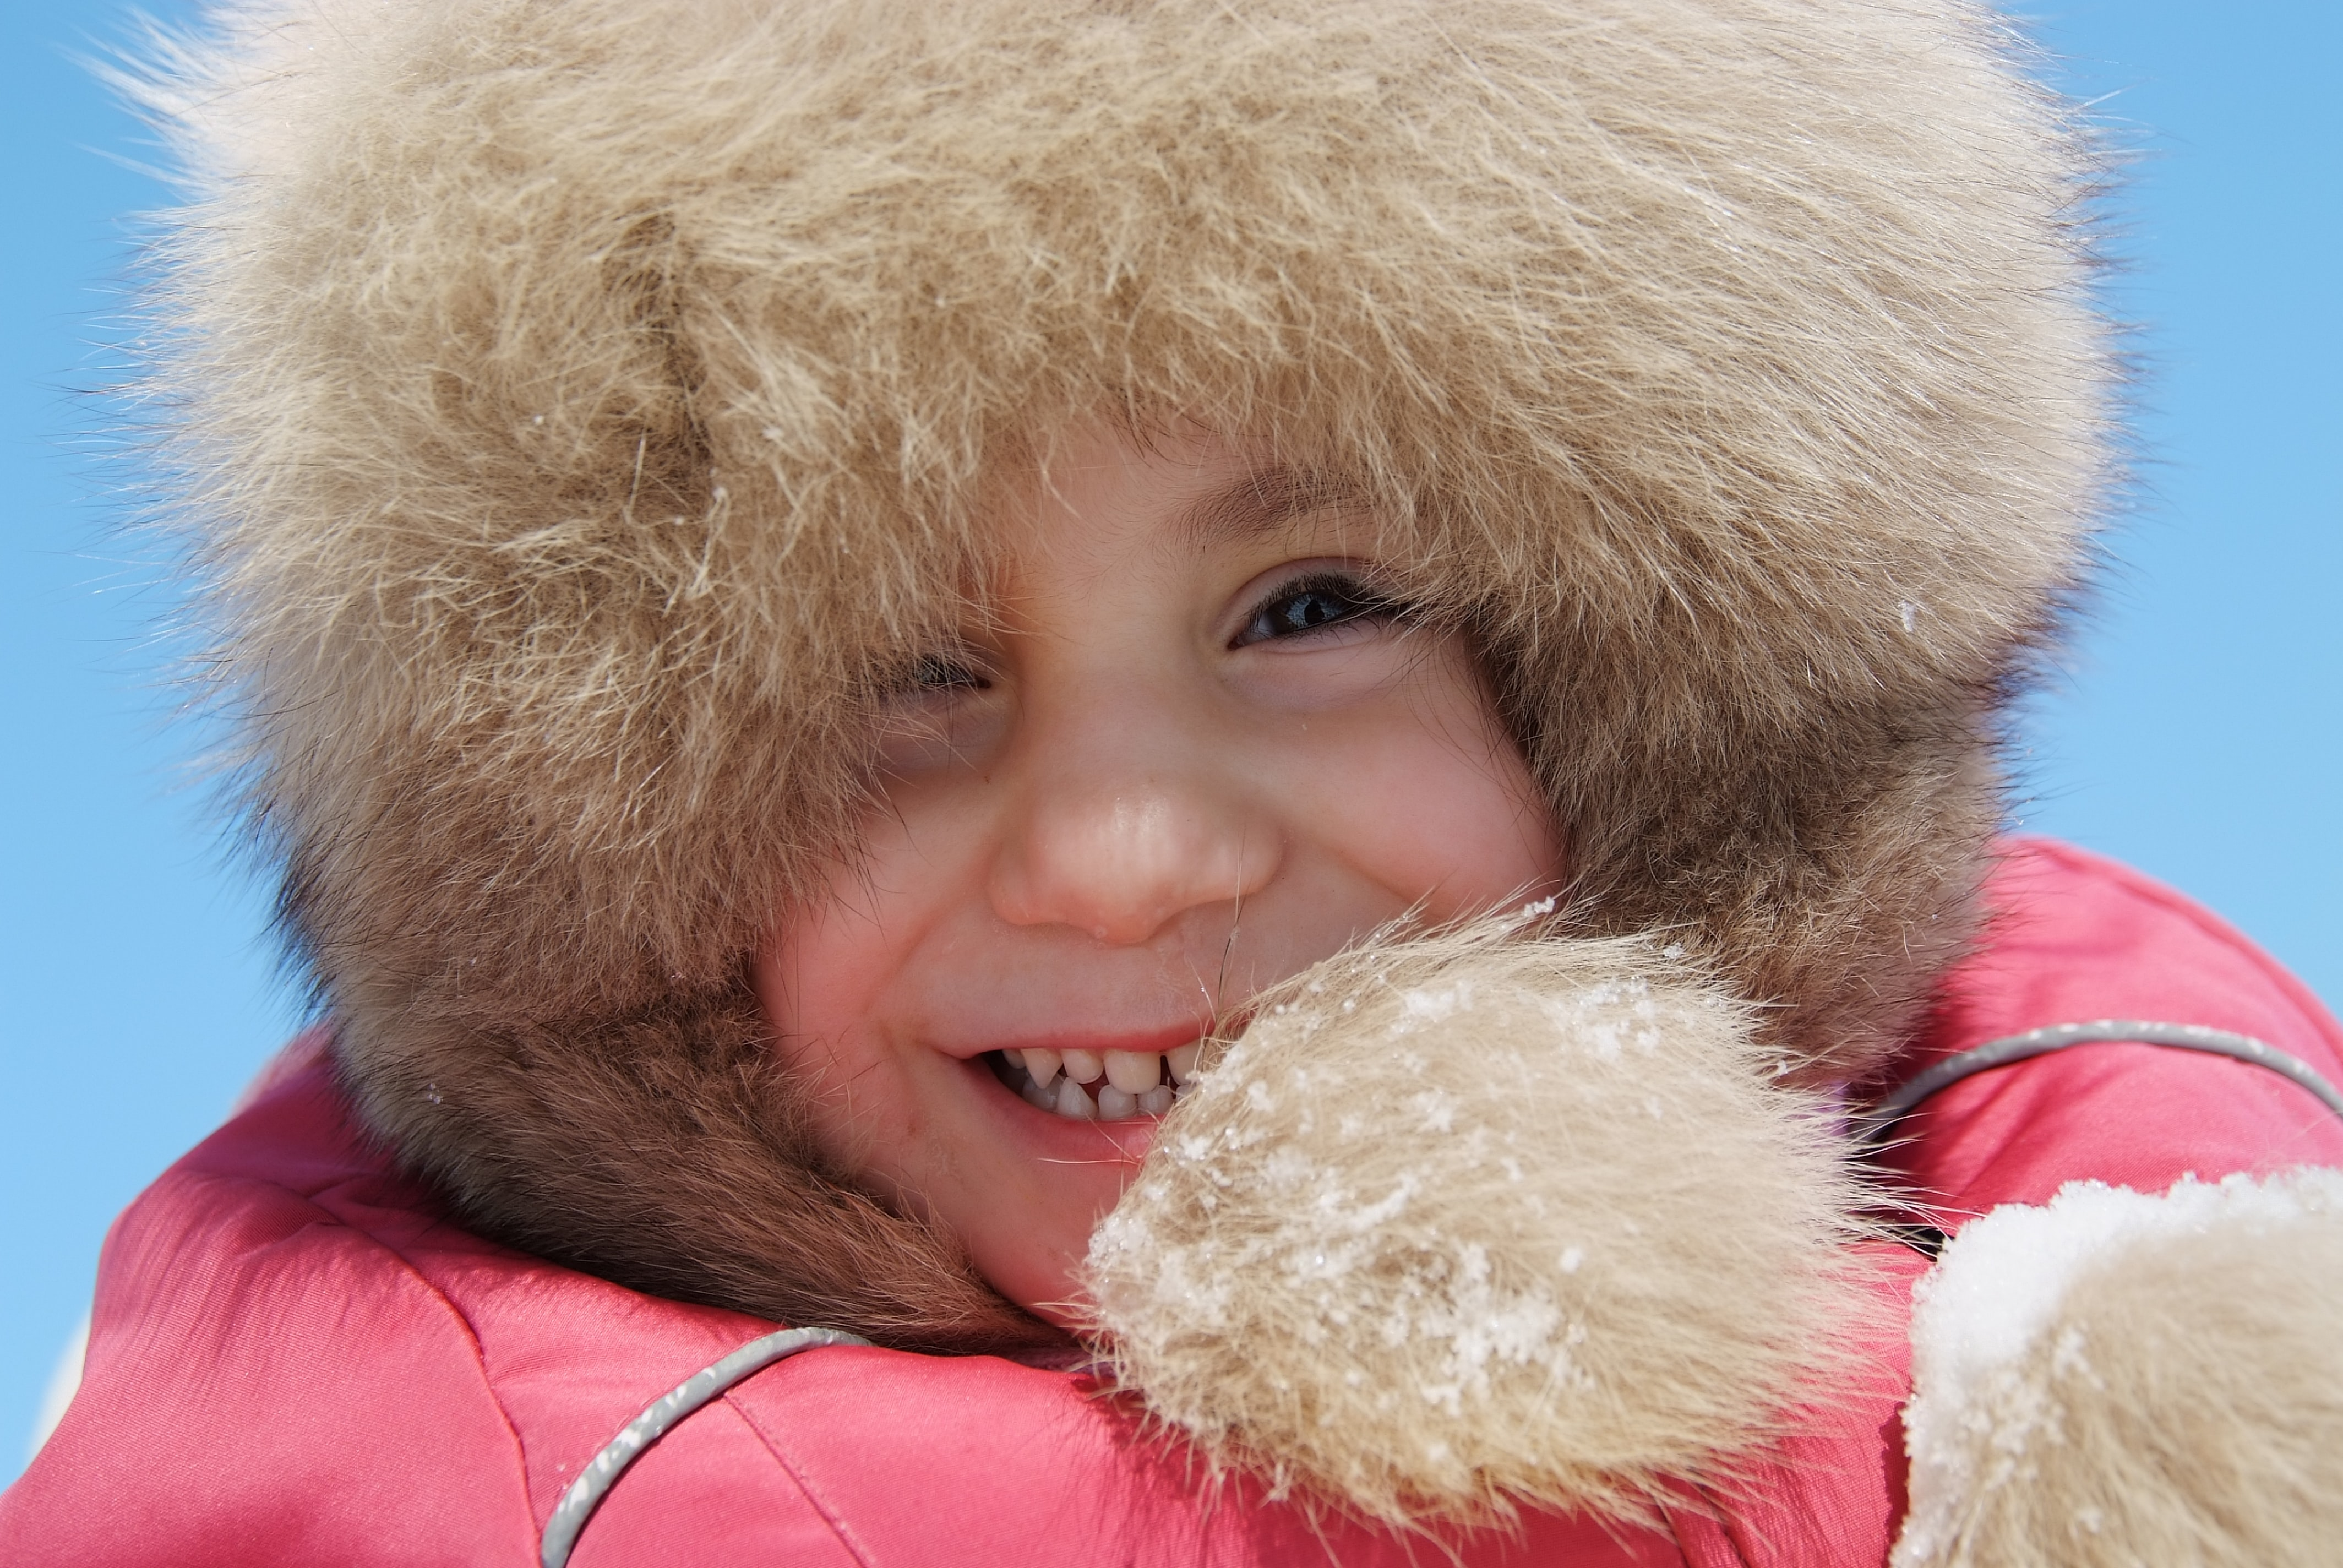 A child wearing a fur-lined hood smiles against a blue sky in Kazan